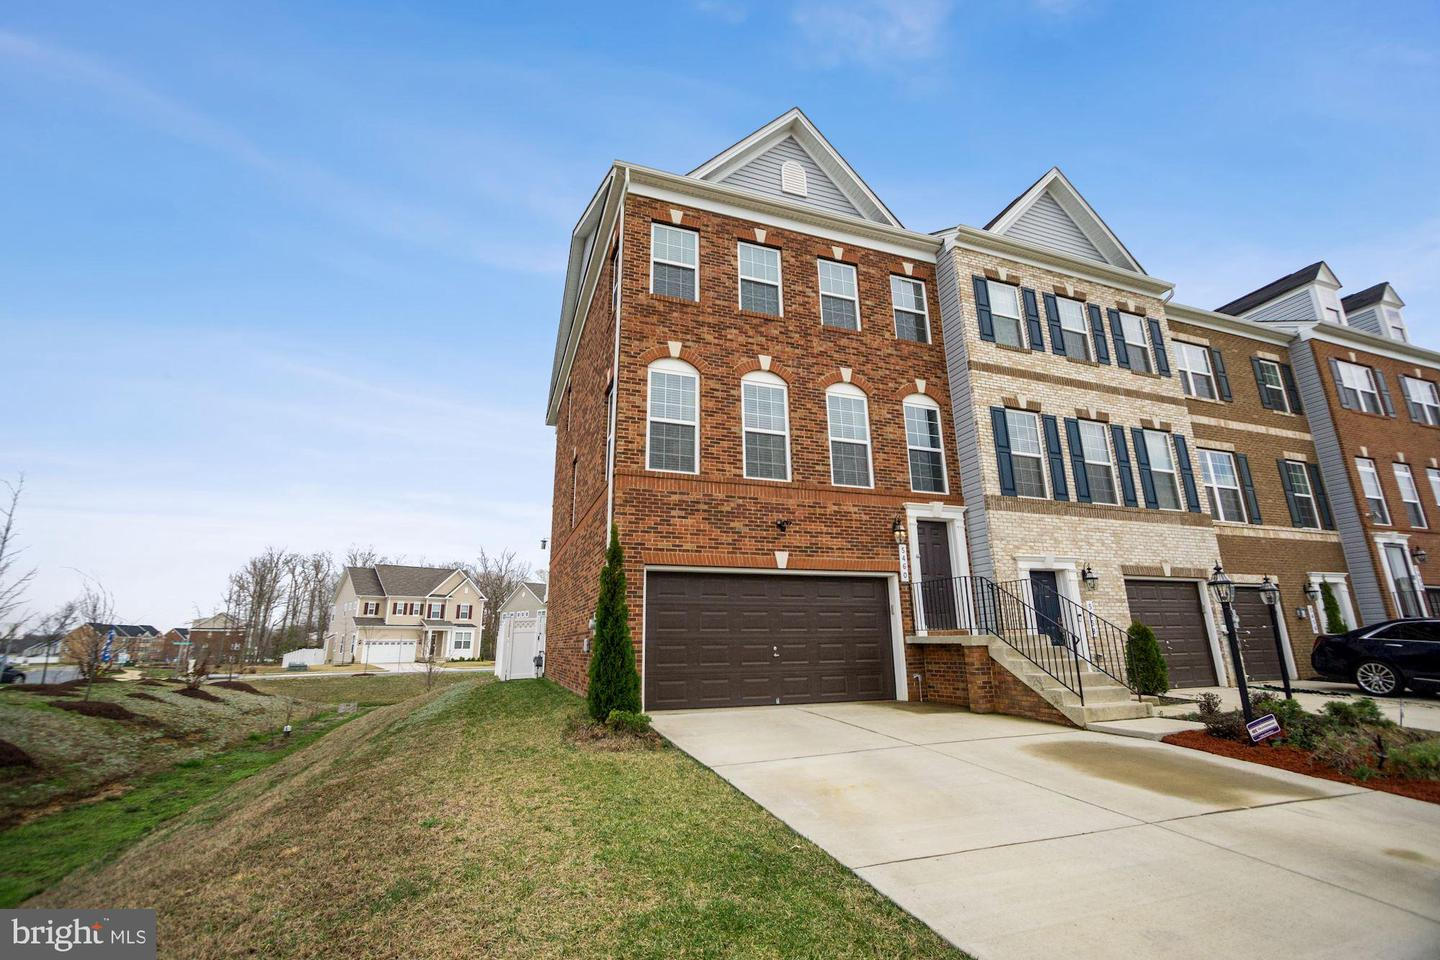 5460 SPOTSWOOD PL, White Plains, Maryland 20695, 3 Bedrooms Bedrooms, ,4 BathroomsBathrooms,Townhouse,For Sale,5460 SPOTSWOOD PL,MDCH222840